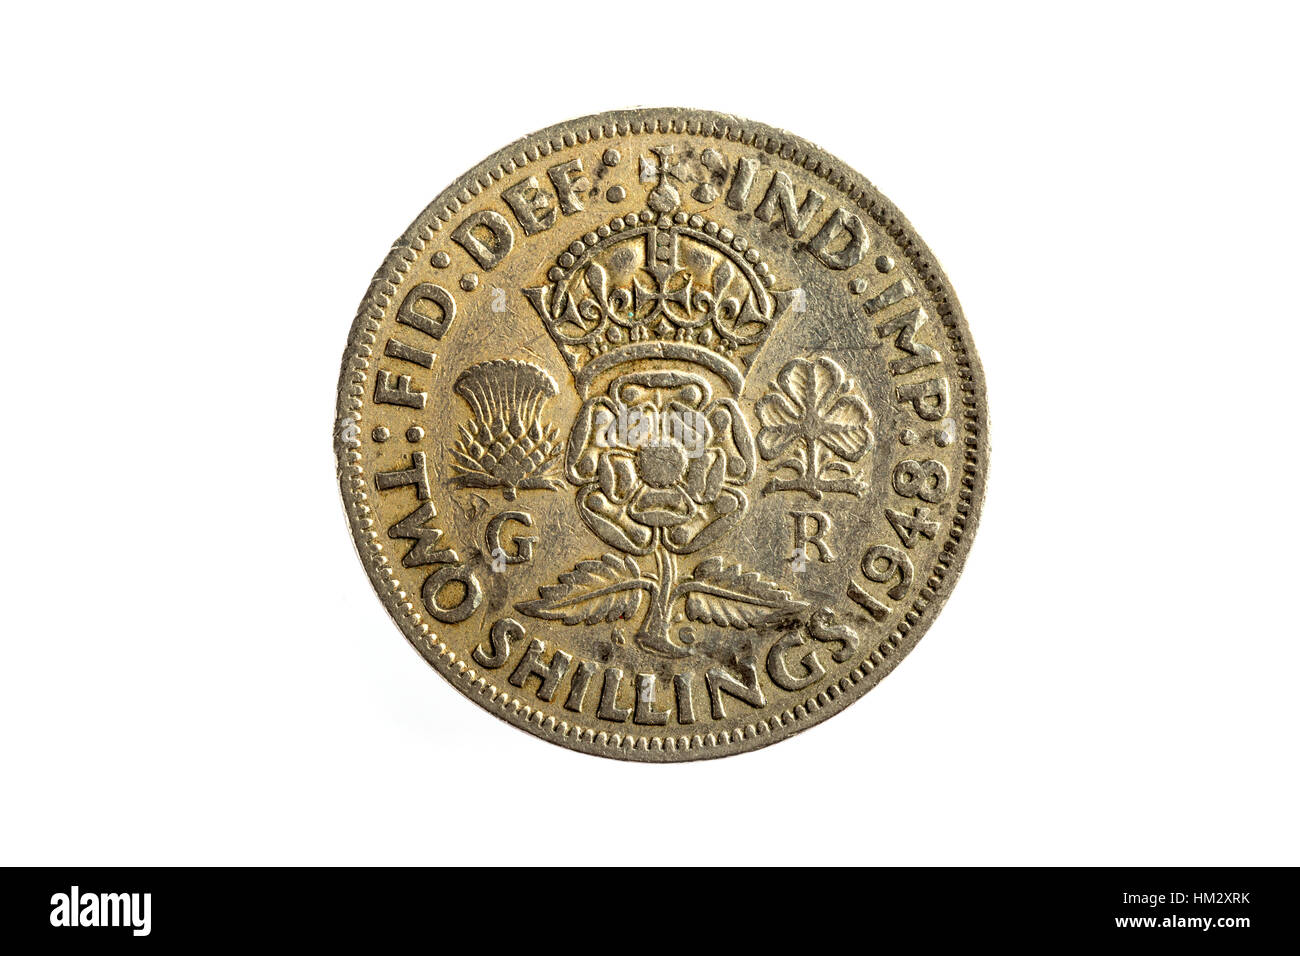 A two Shilling imperial British Coin - Stock Image